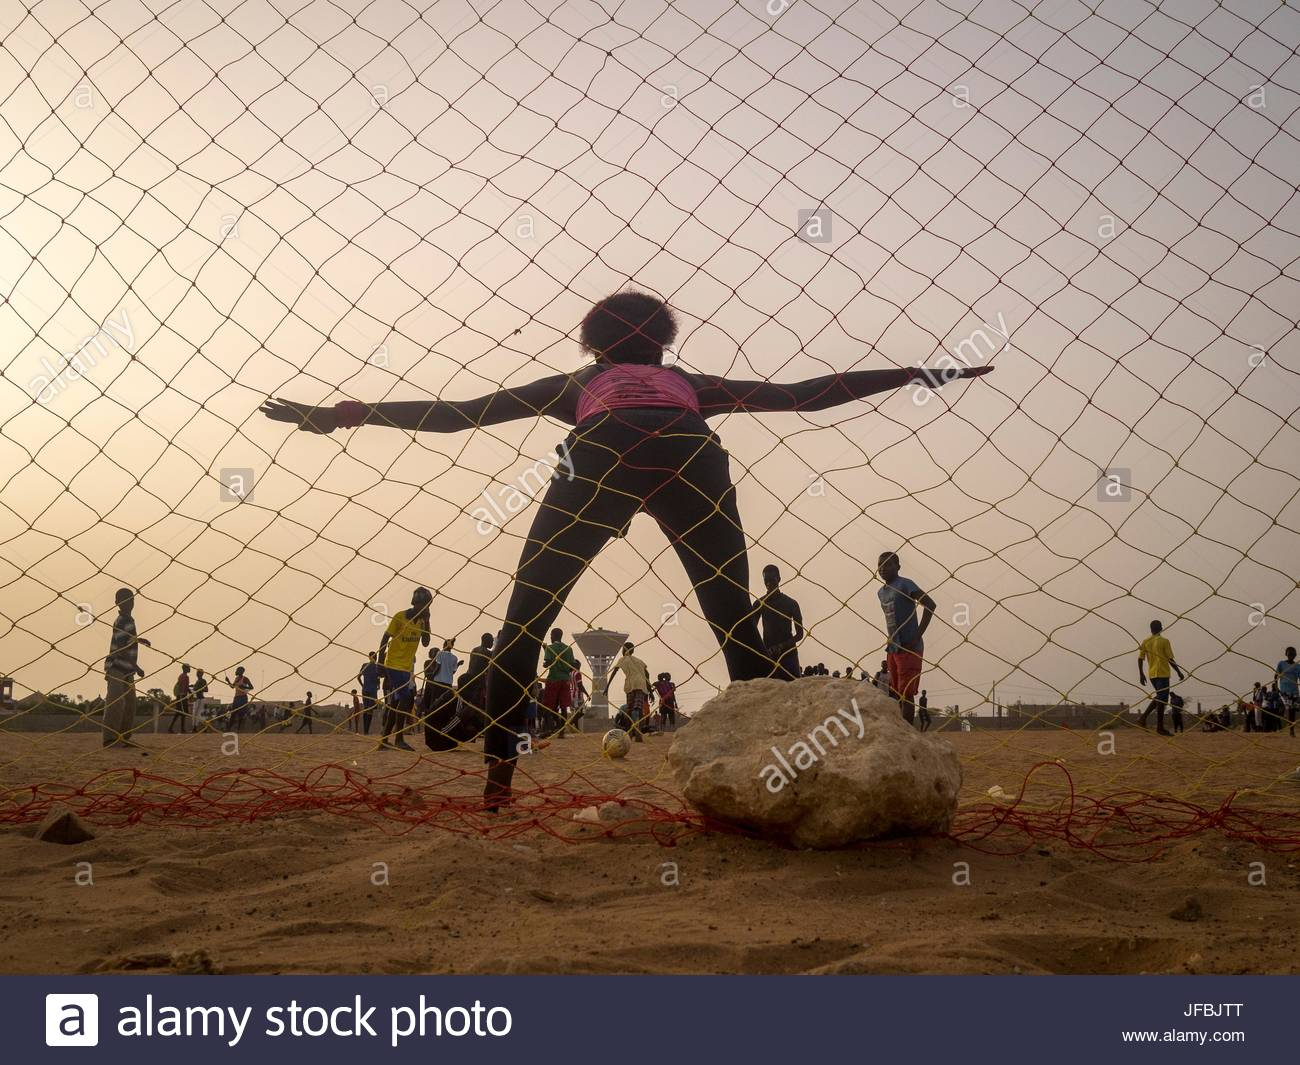 Boys and girls from La Somone playing soccer on the grounds of their school, the Lycee Somone-Ngaparou School. - Stock Image